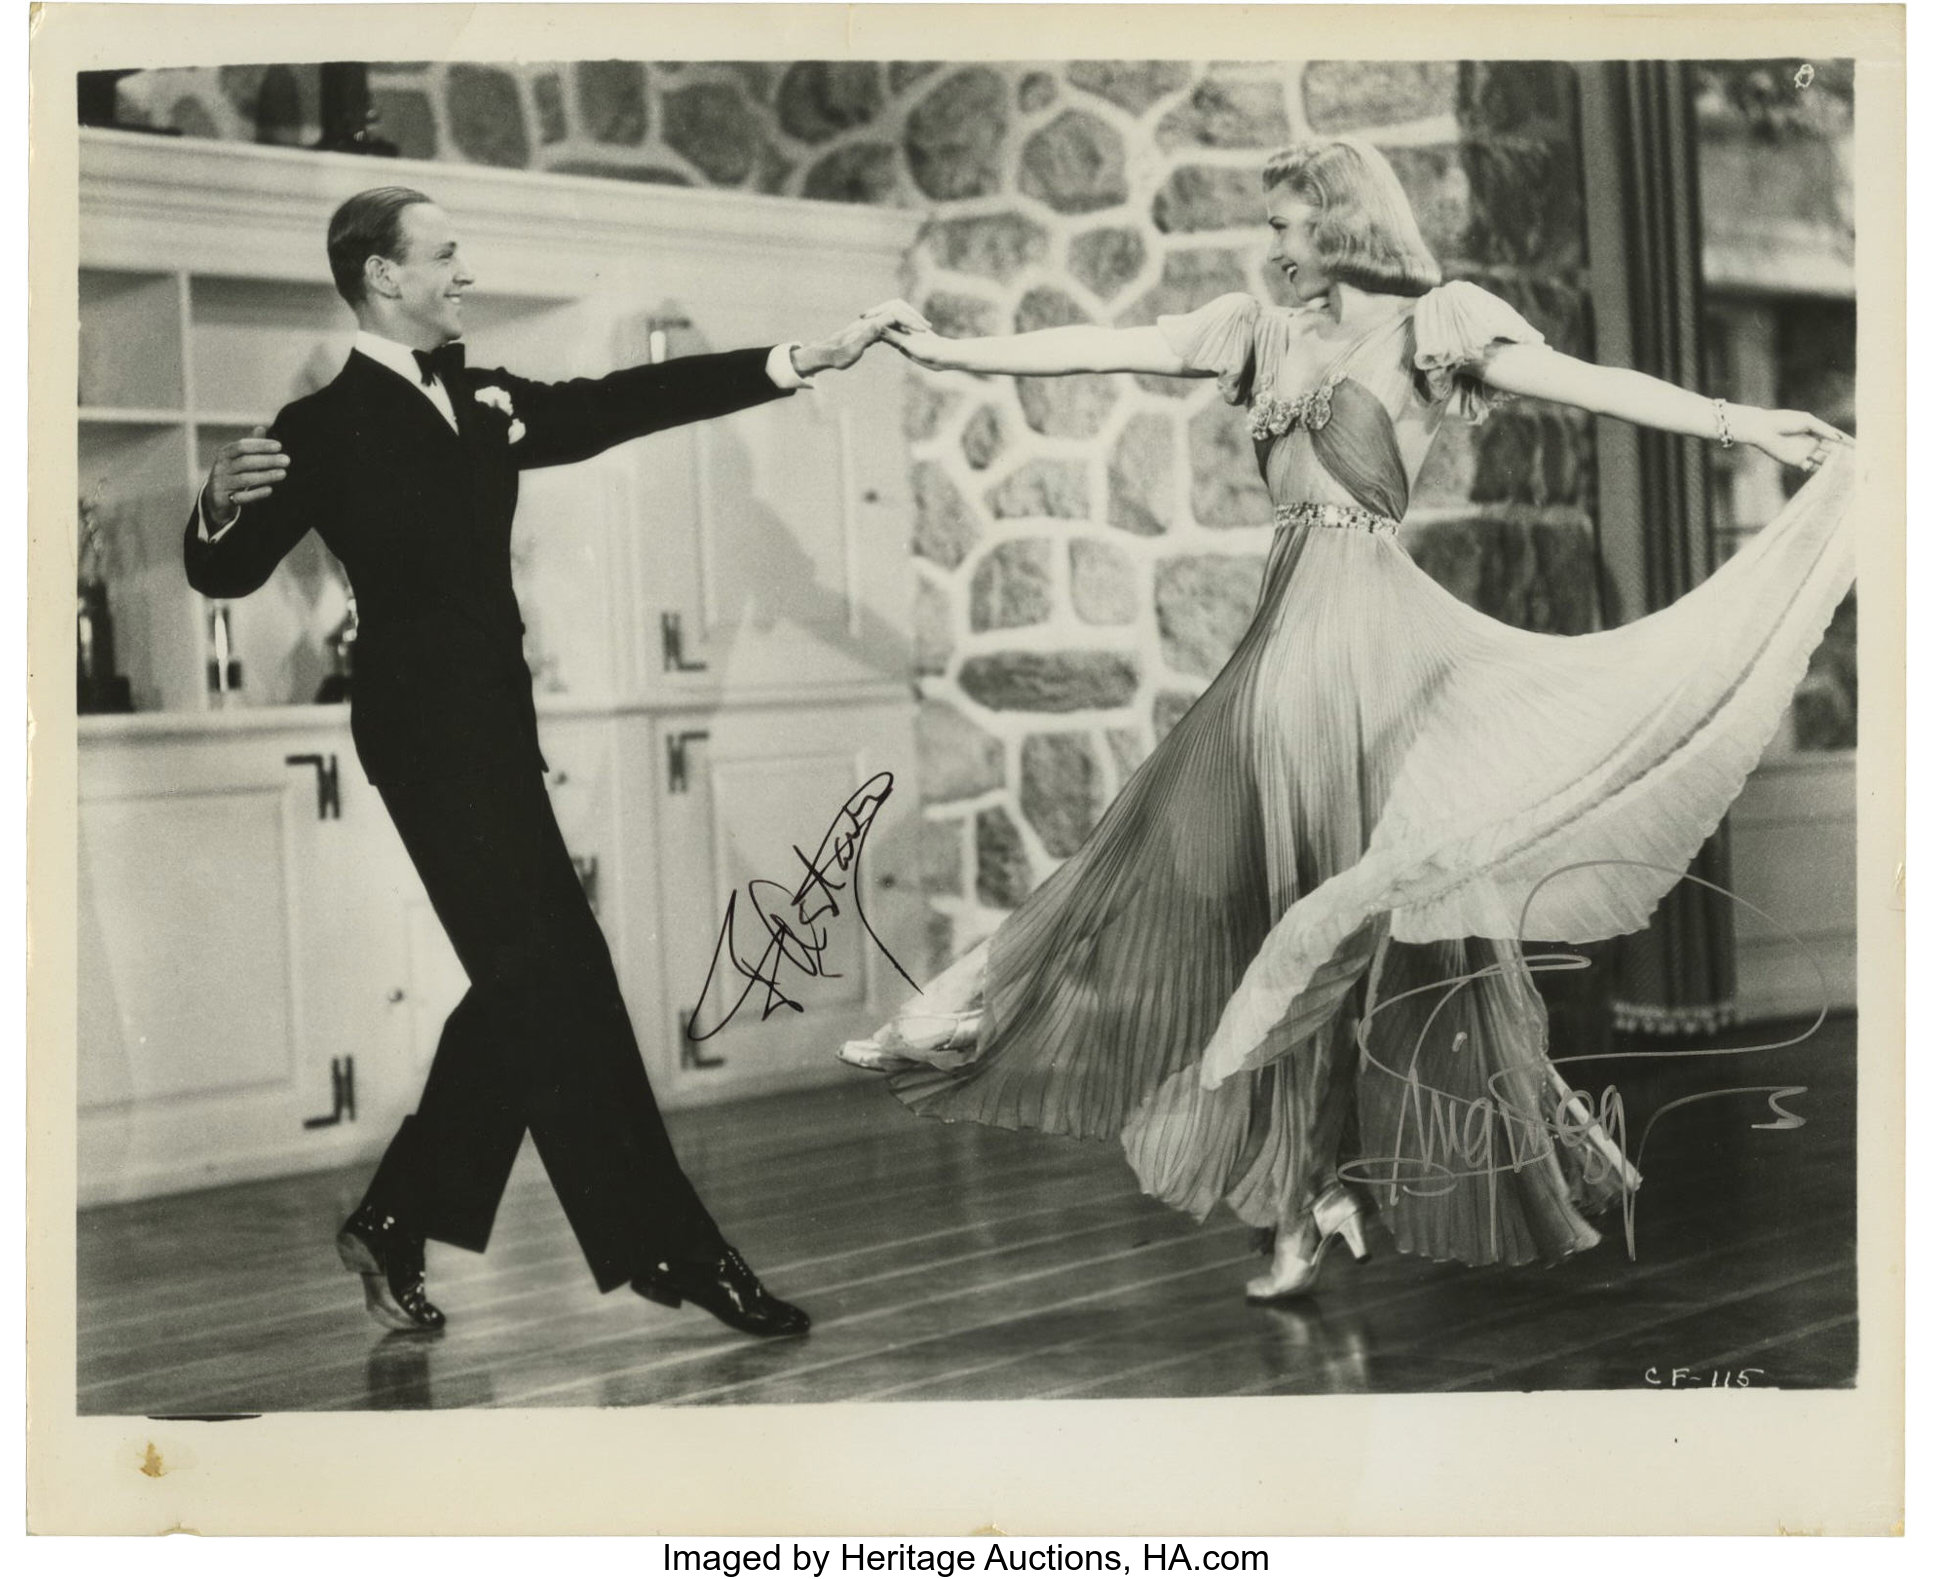 Carefree Fred Astaire And Ginger Rogers Signed Photo Undated Lot 17555 Heritage Auctions